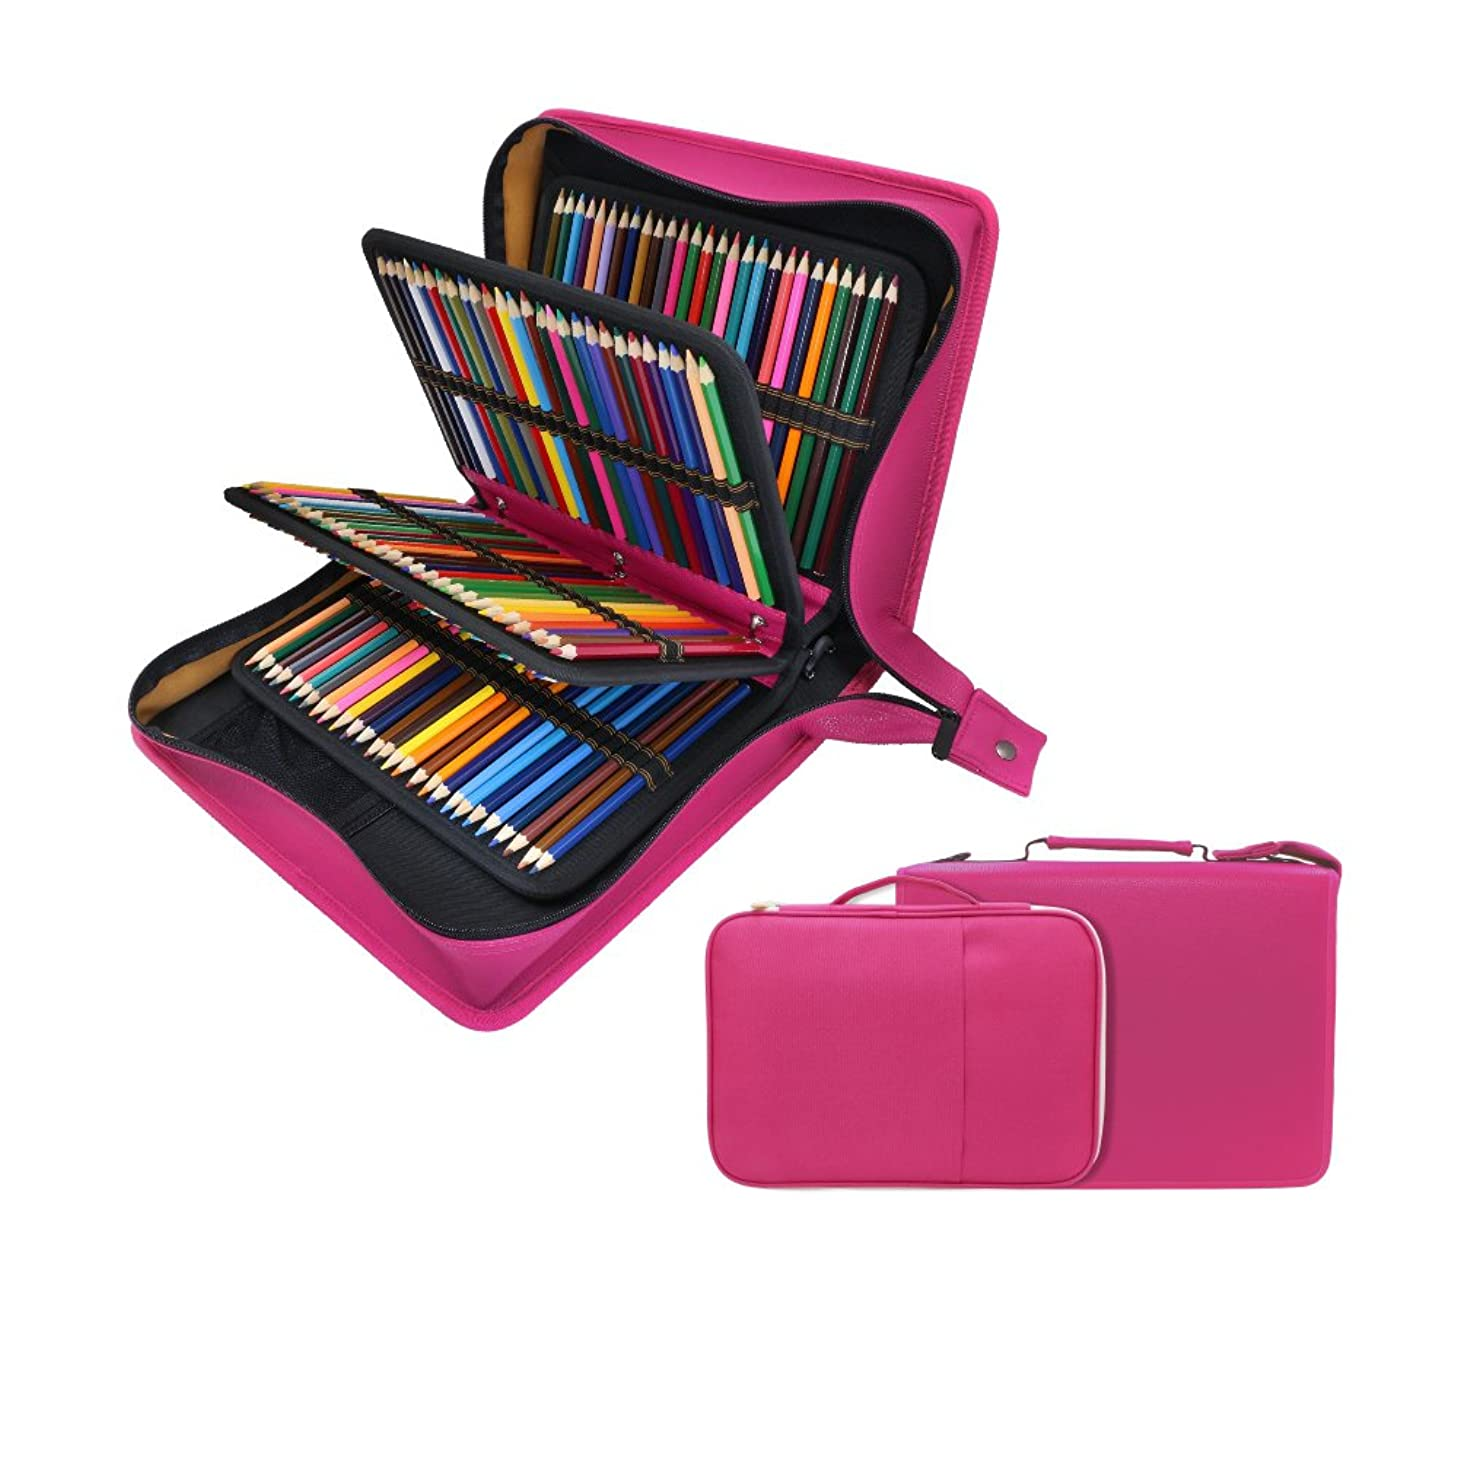 200 + 16 Slots Pencil Case & Extra Pencil Sleeve Holder - Bundle for Prismacolor Watercolor Pencils, Crayola Colored Pencils, Marco Pens and Cosmetic Brush by YOUSHARES (216 Slots Red) Pink